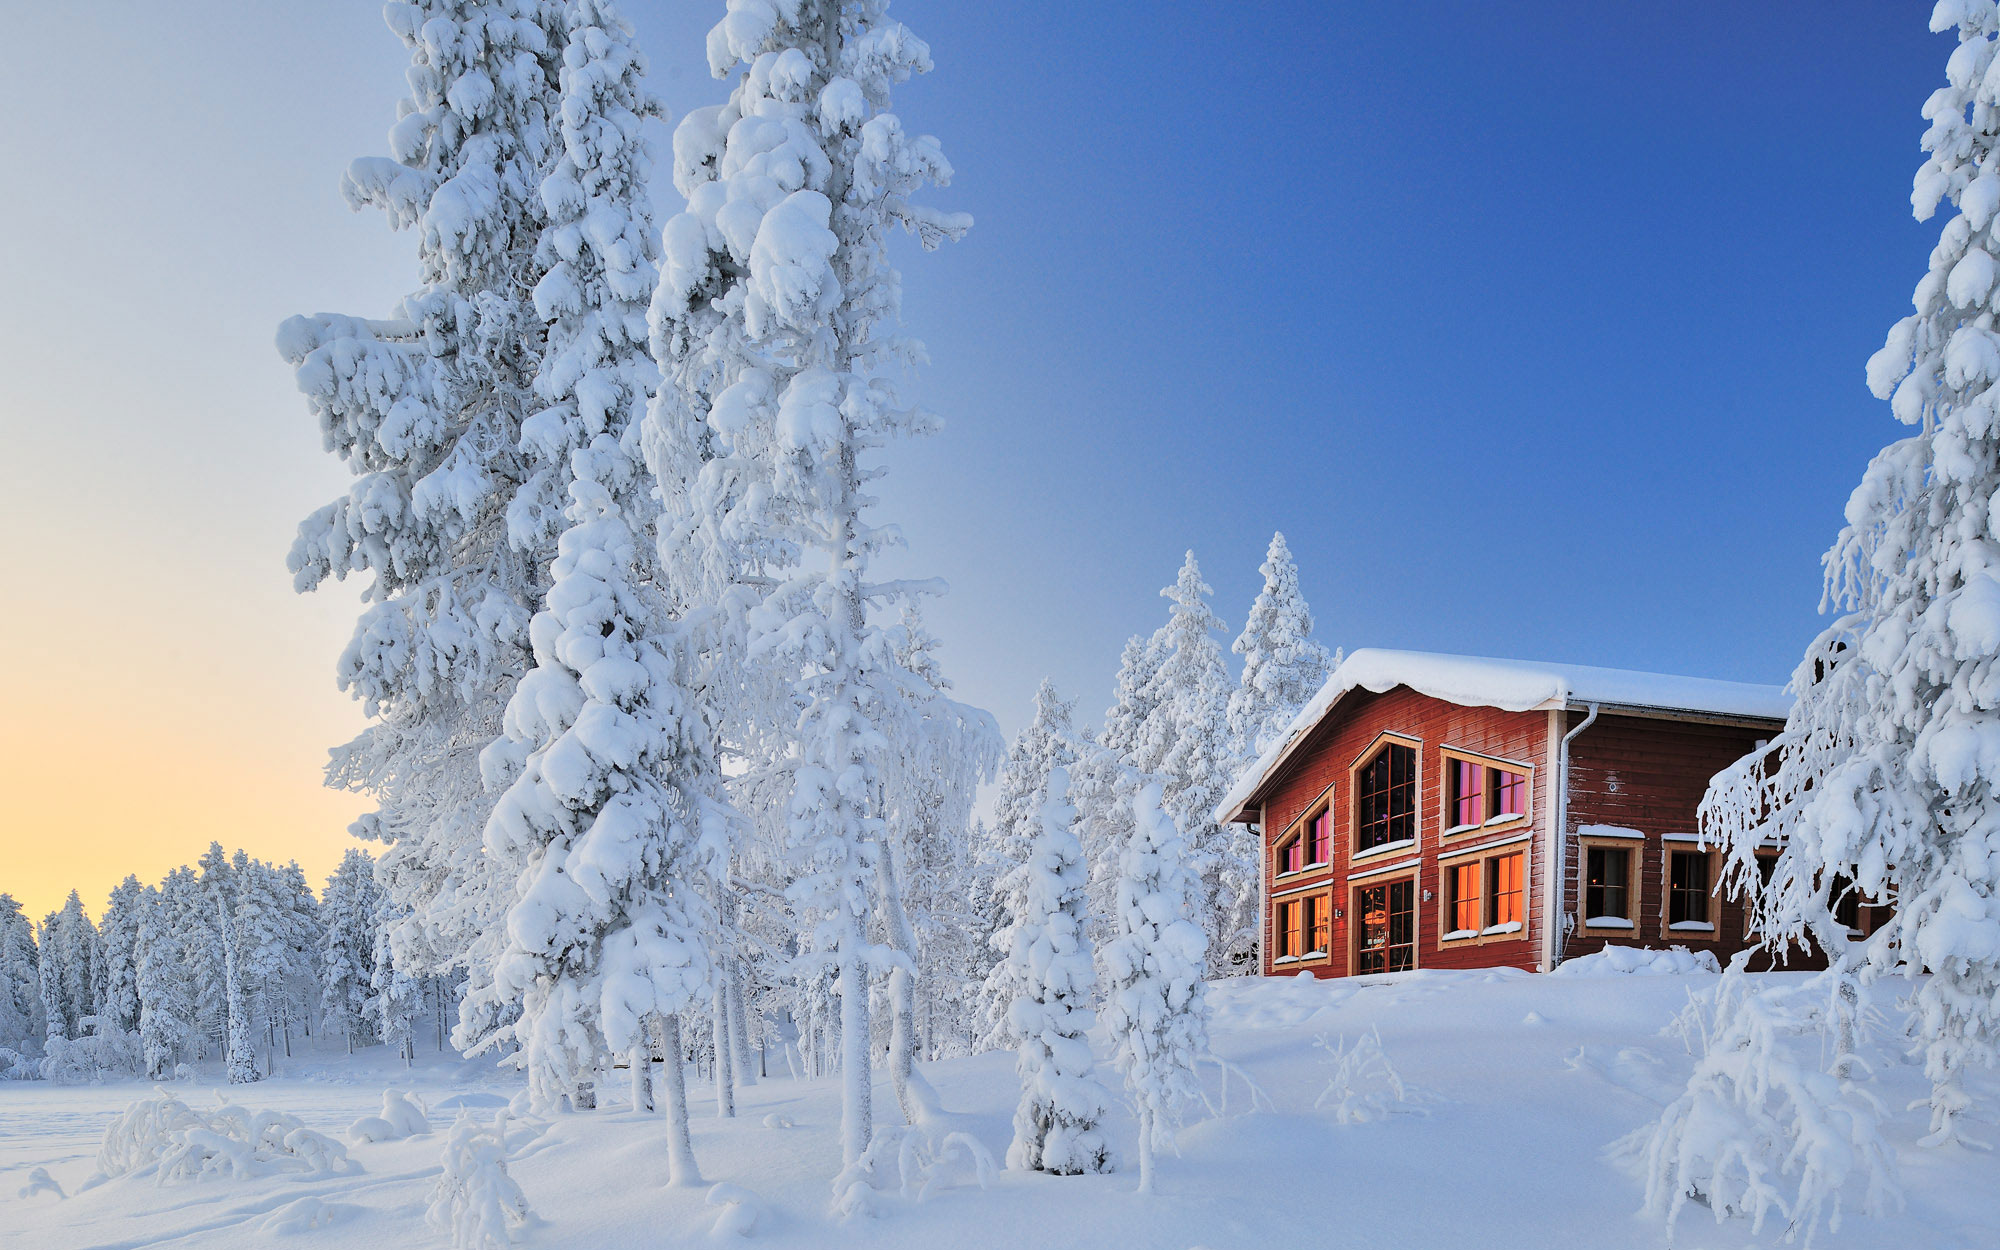 Pinetree_Lodge-Europe-Winter-Retreats-COZY1215.jpg